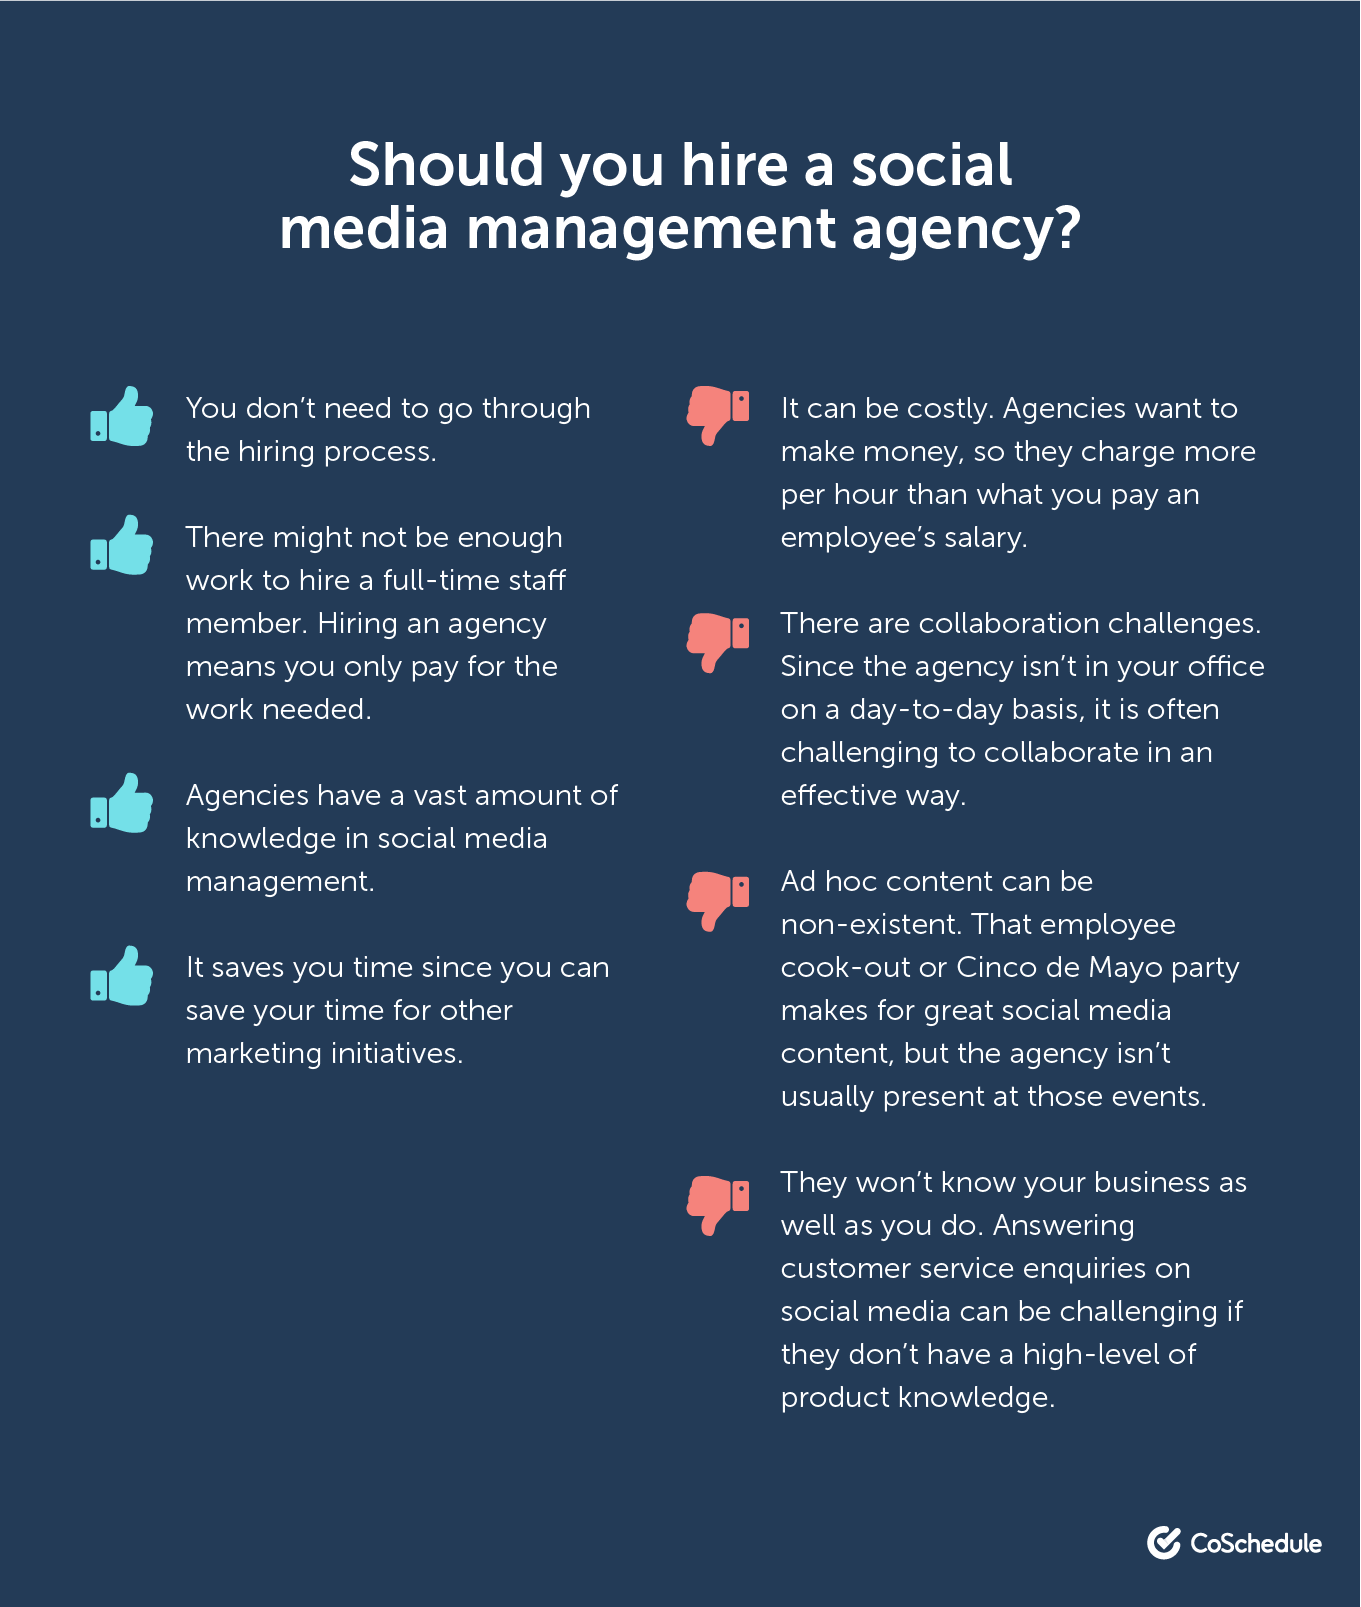 Pros and cons of hiring a social media manager